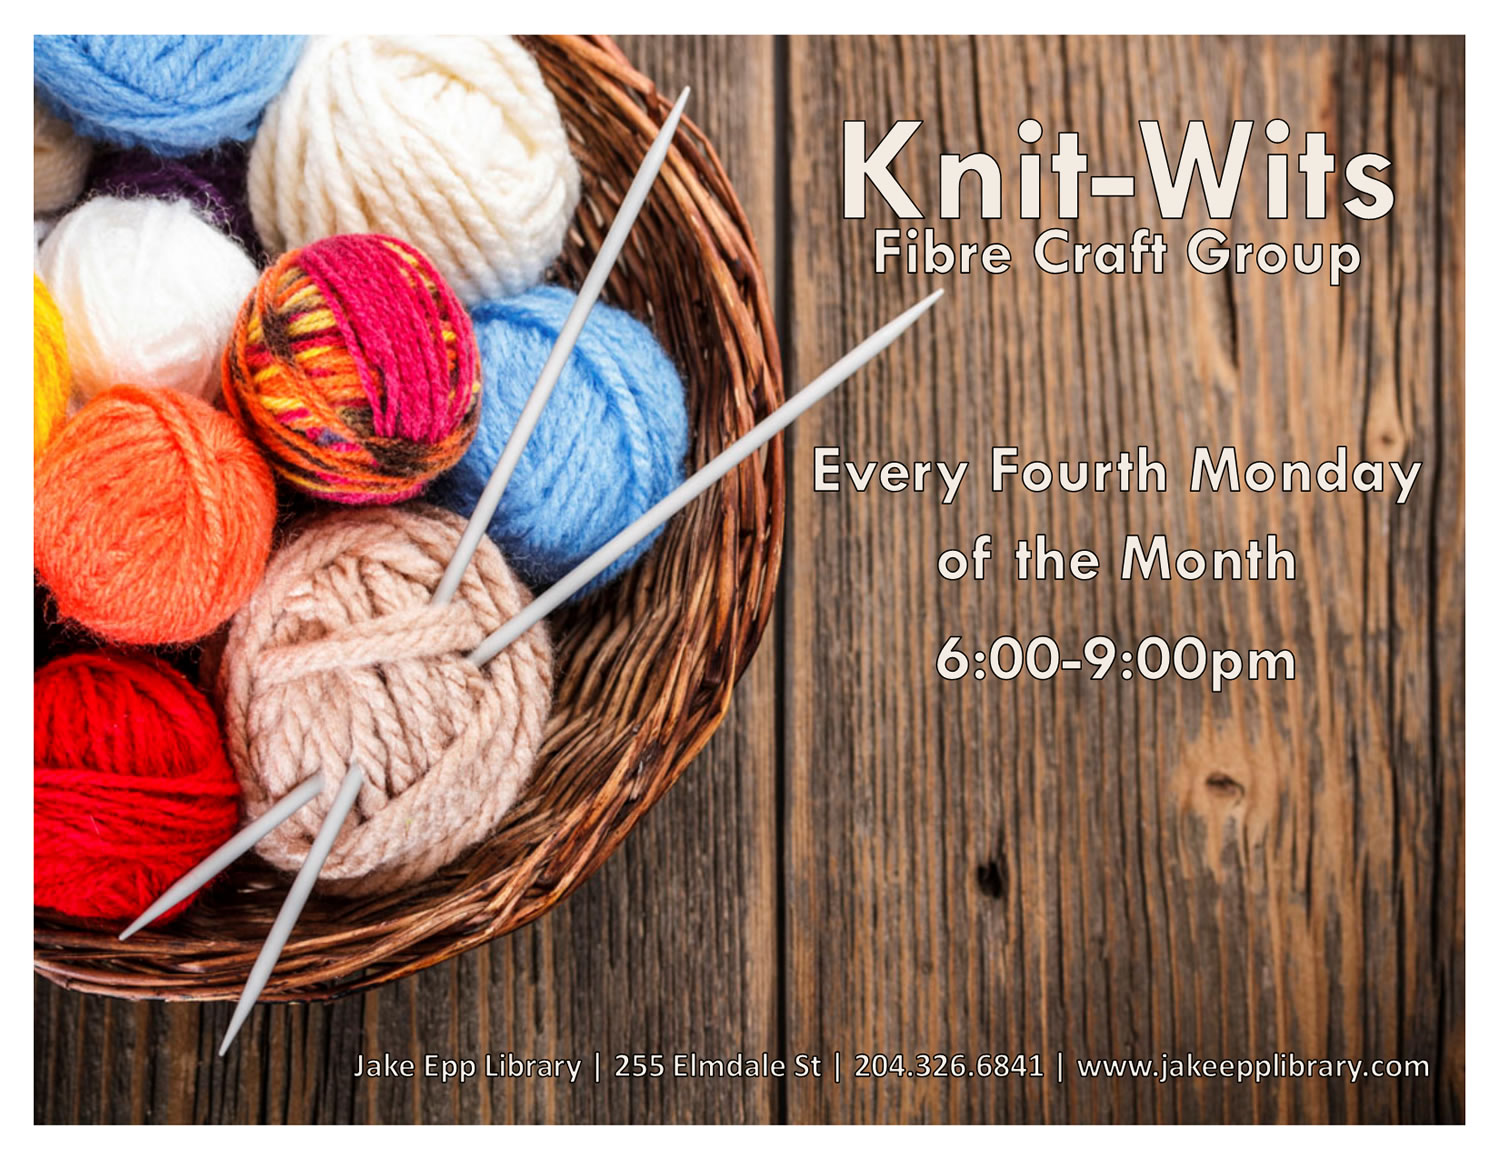 Knit-wits 2017